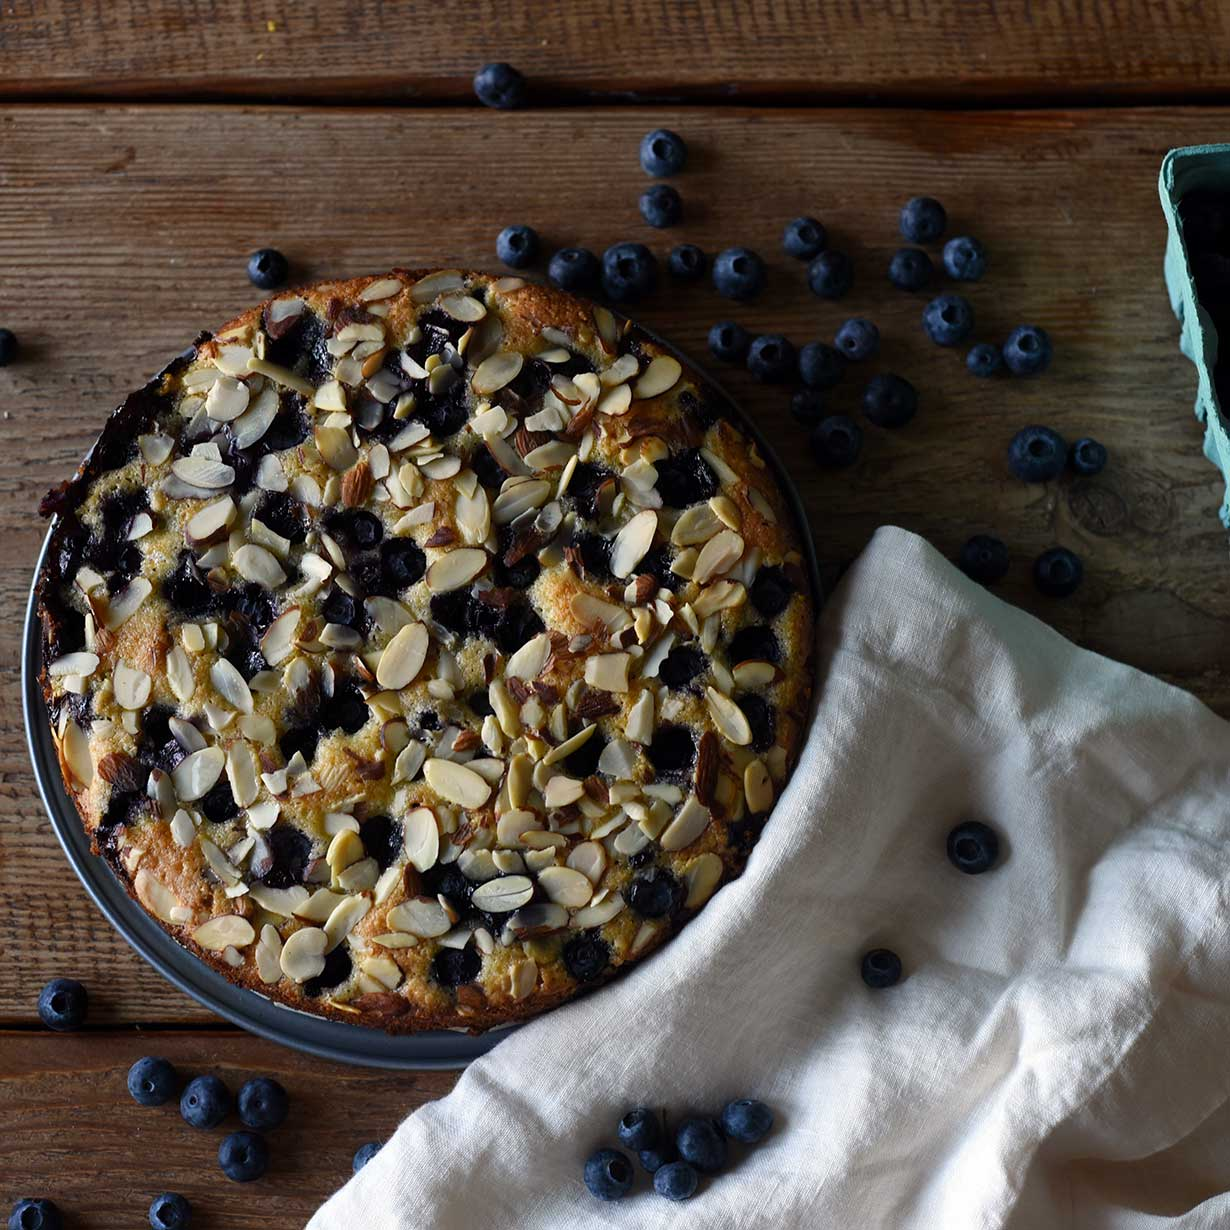 Coconut, Almond, and Blueberry Cake